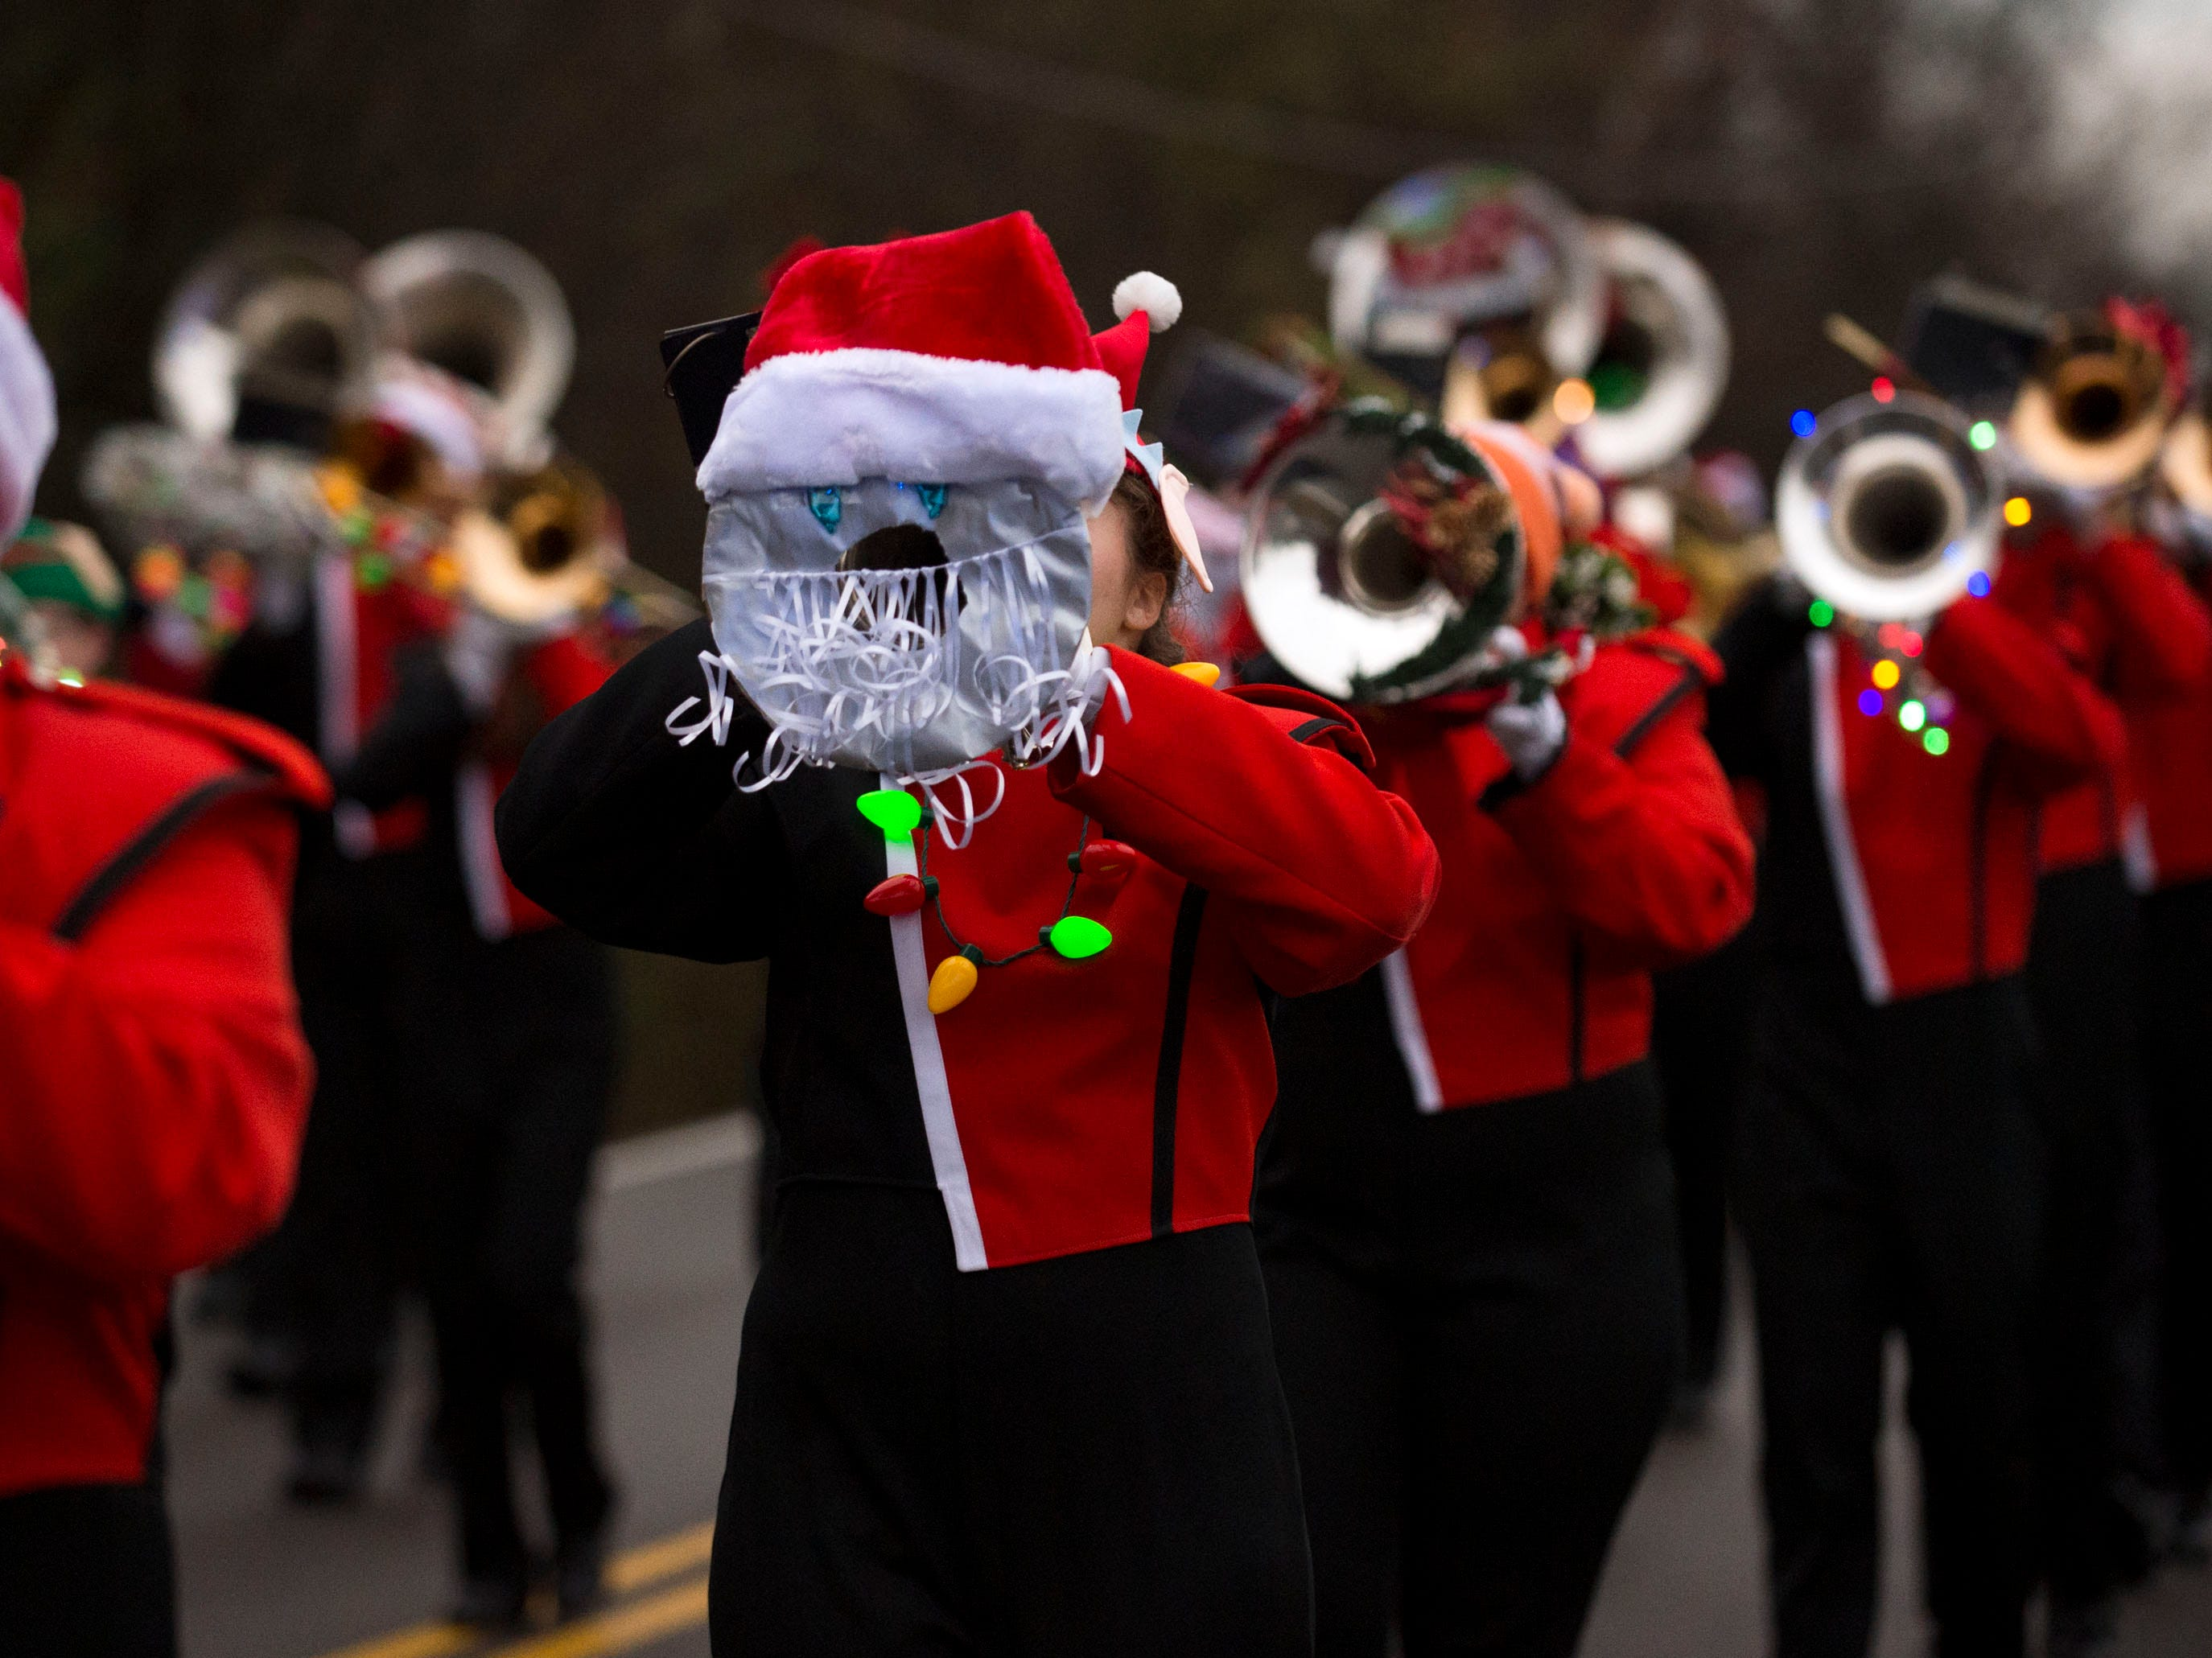 The Powell High School Marching Panther Band performing in the Powell Lions Club Christmas Parade on Saturday, December 1, 2018.